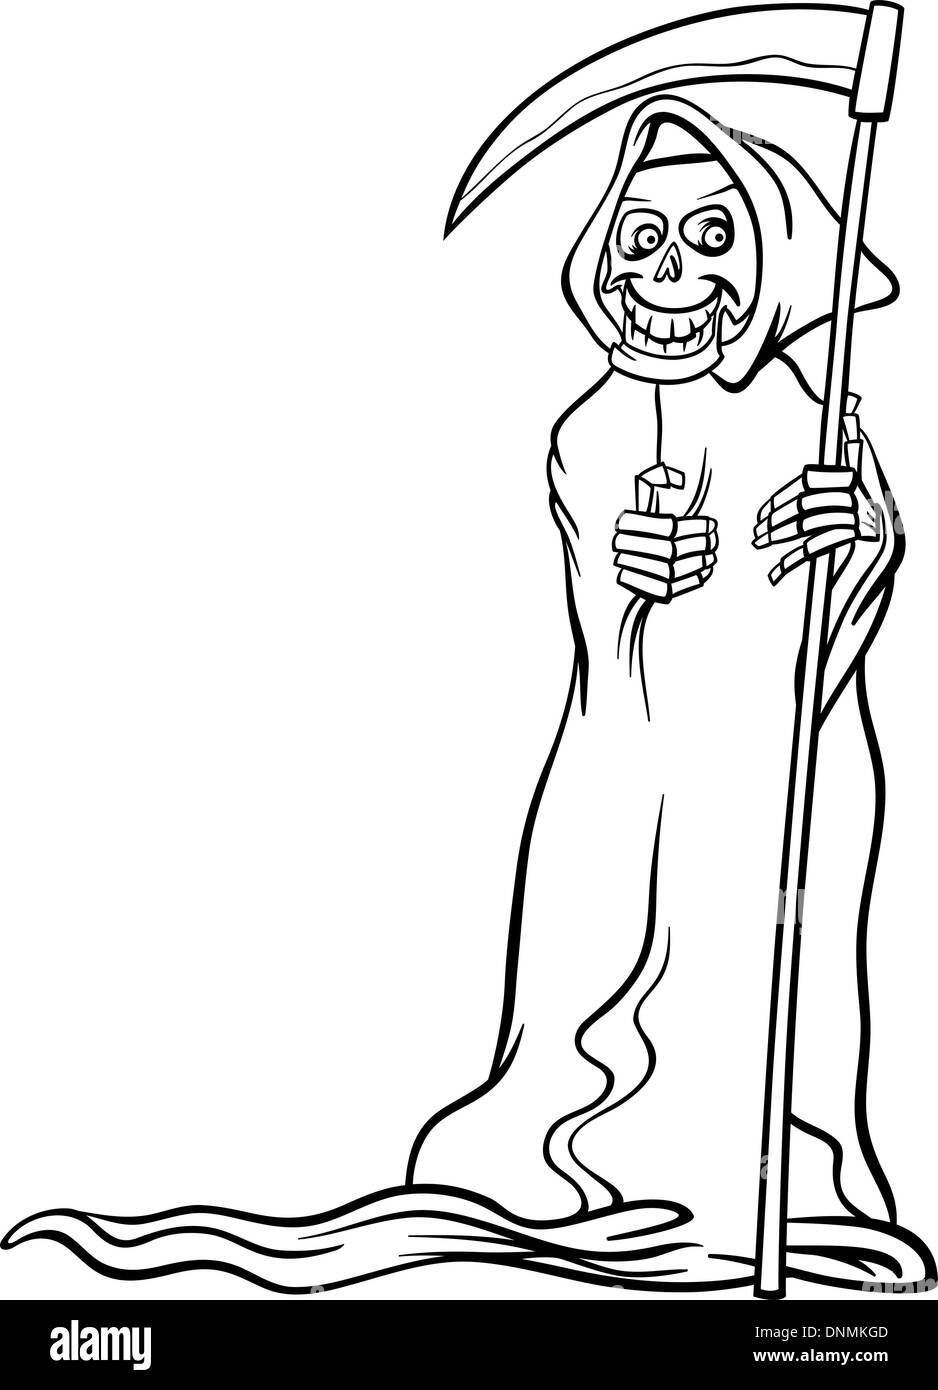 black and white cartoon illustration of spooky halloween death